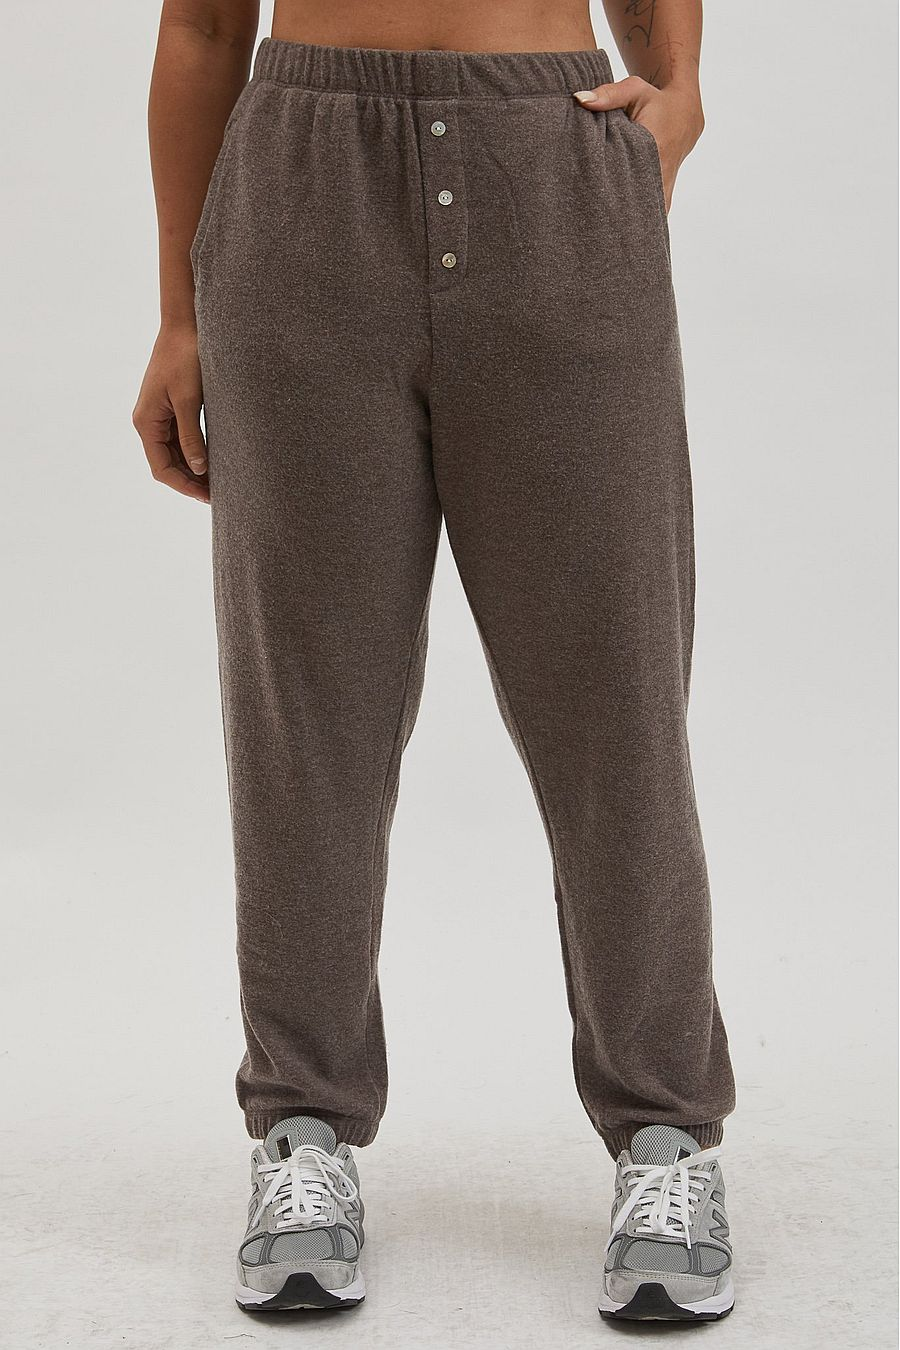 DONNI. Sweater Henley Sweatpant - Chocolate